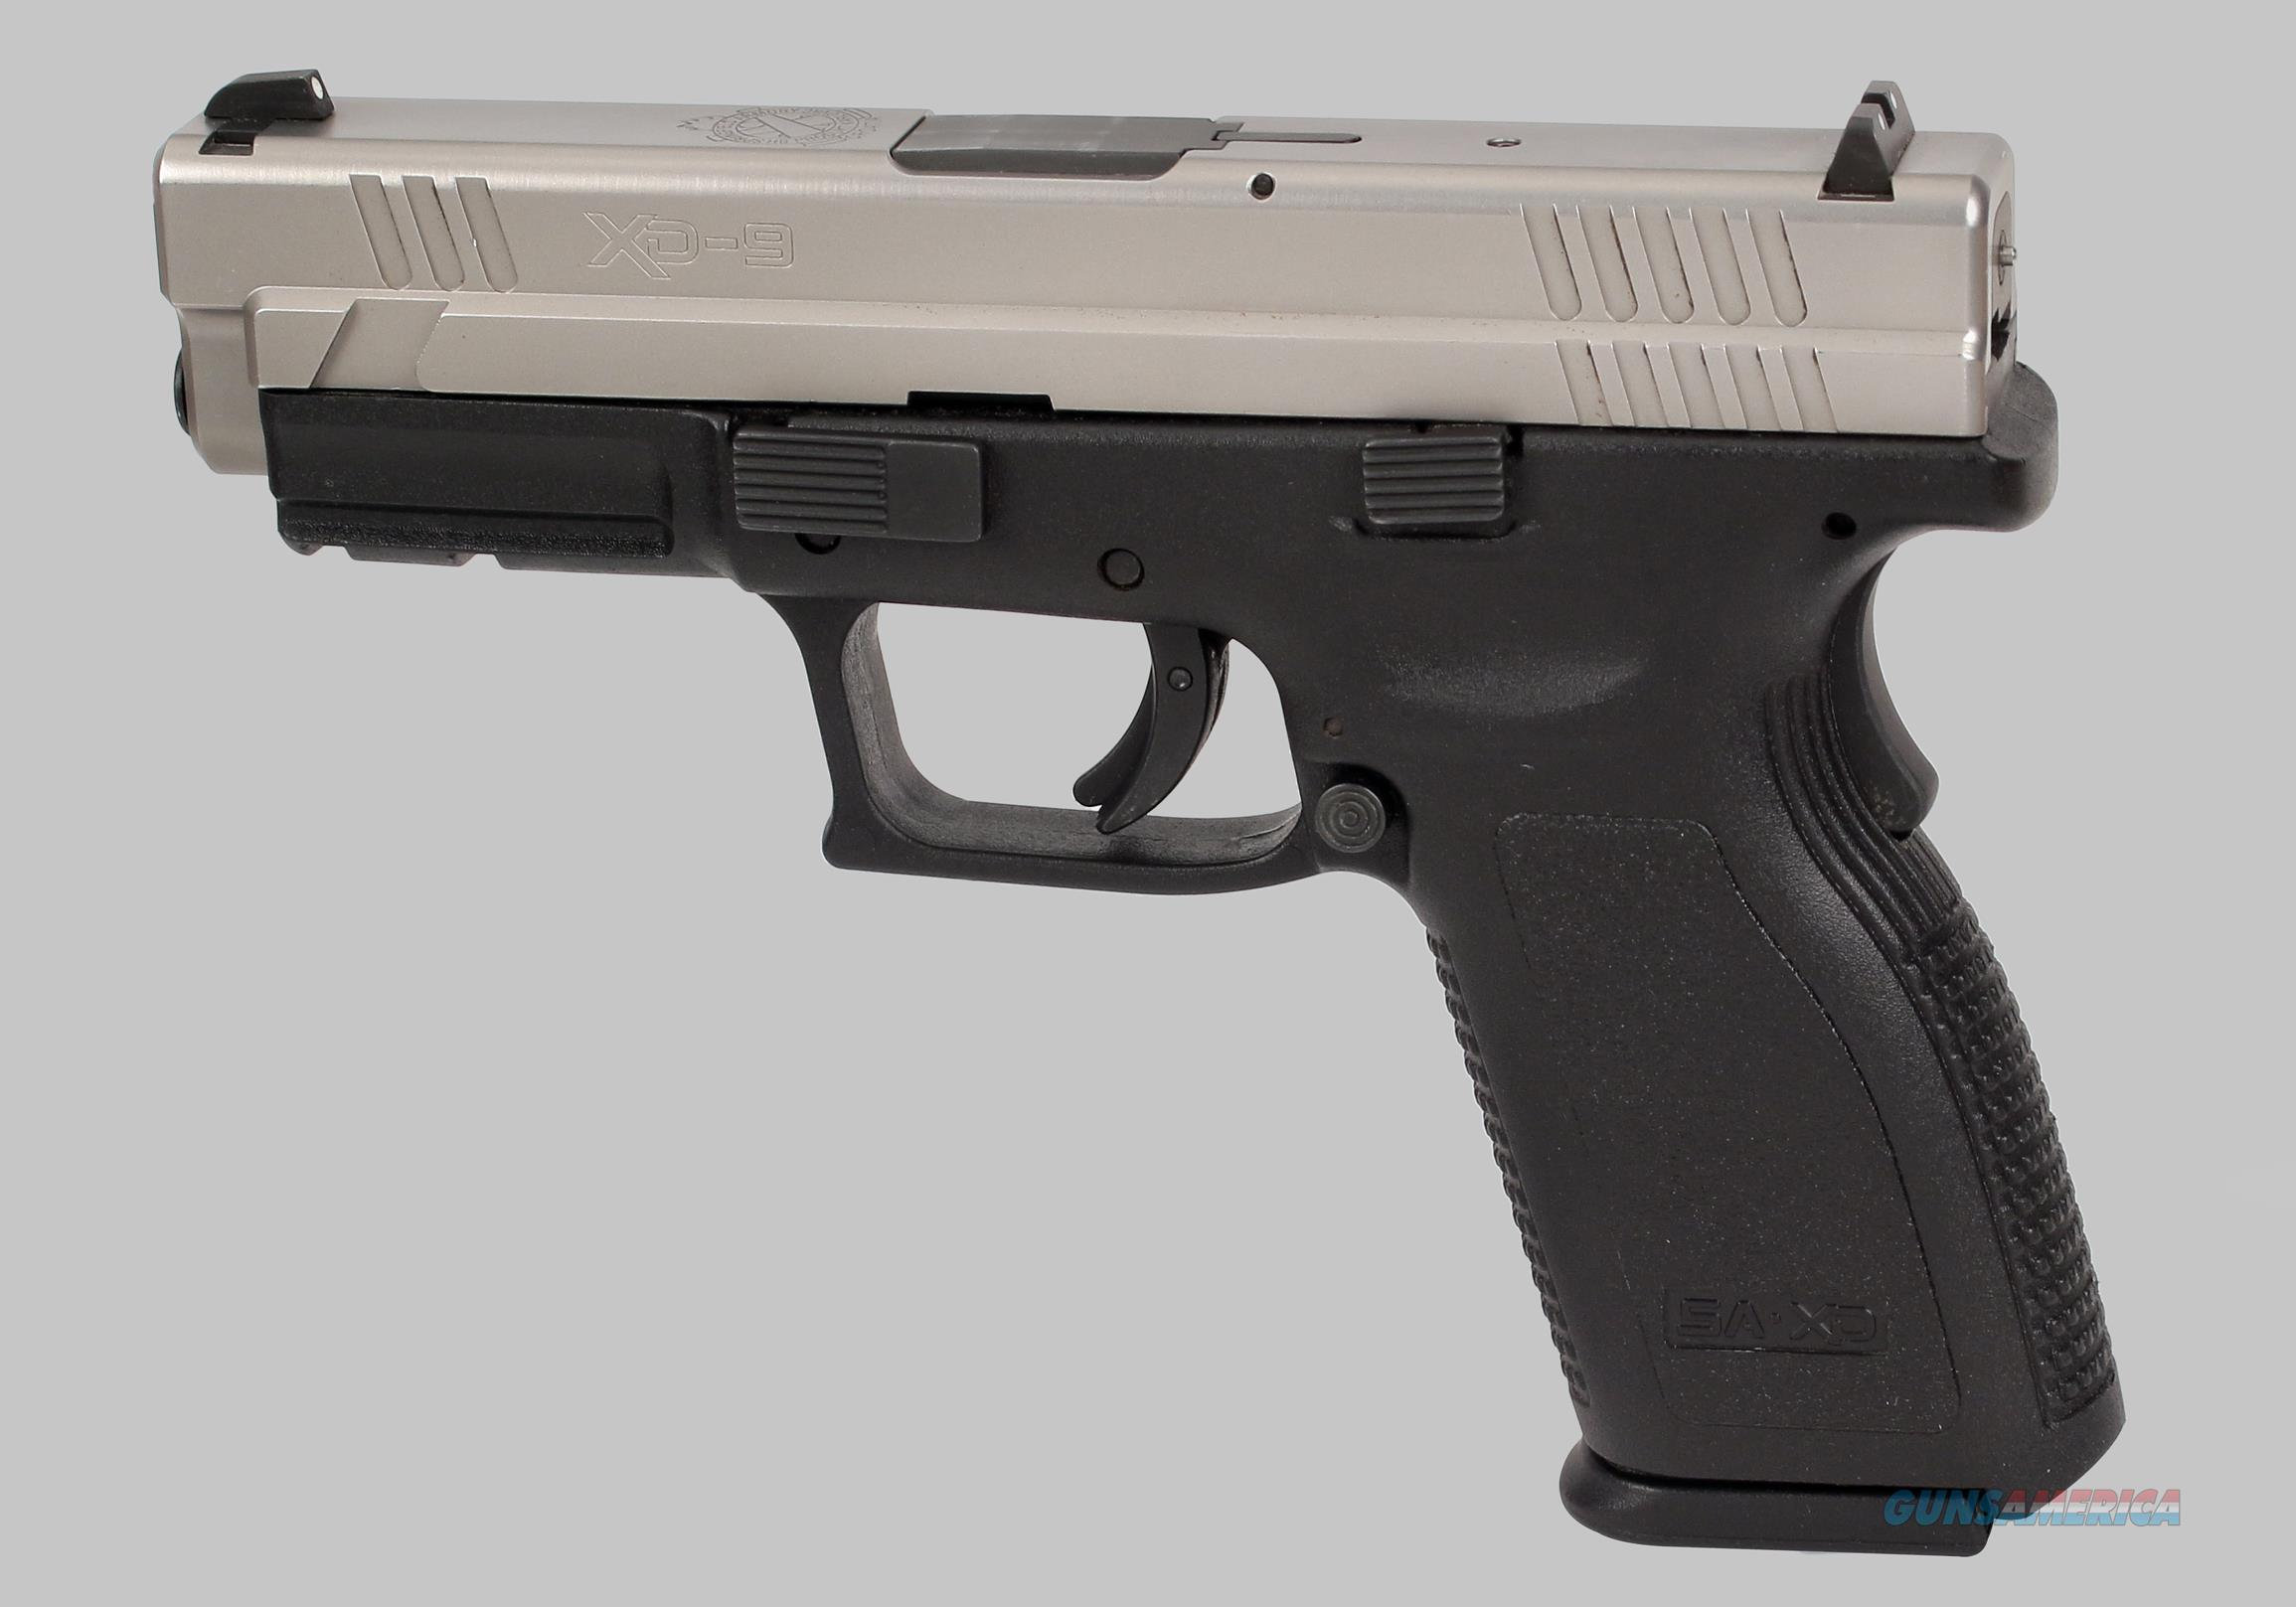 Springfield Armory M Xd9 Pistol For Sale